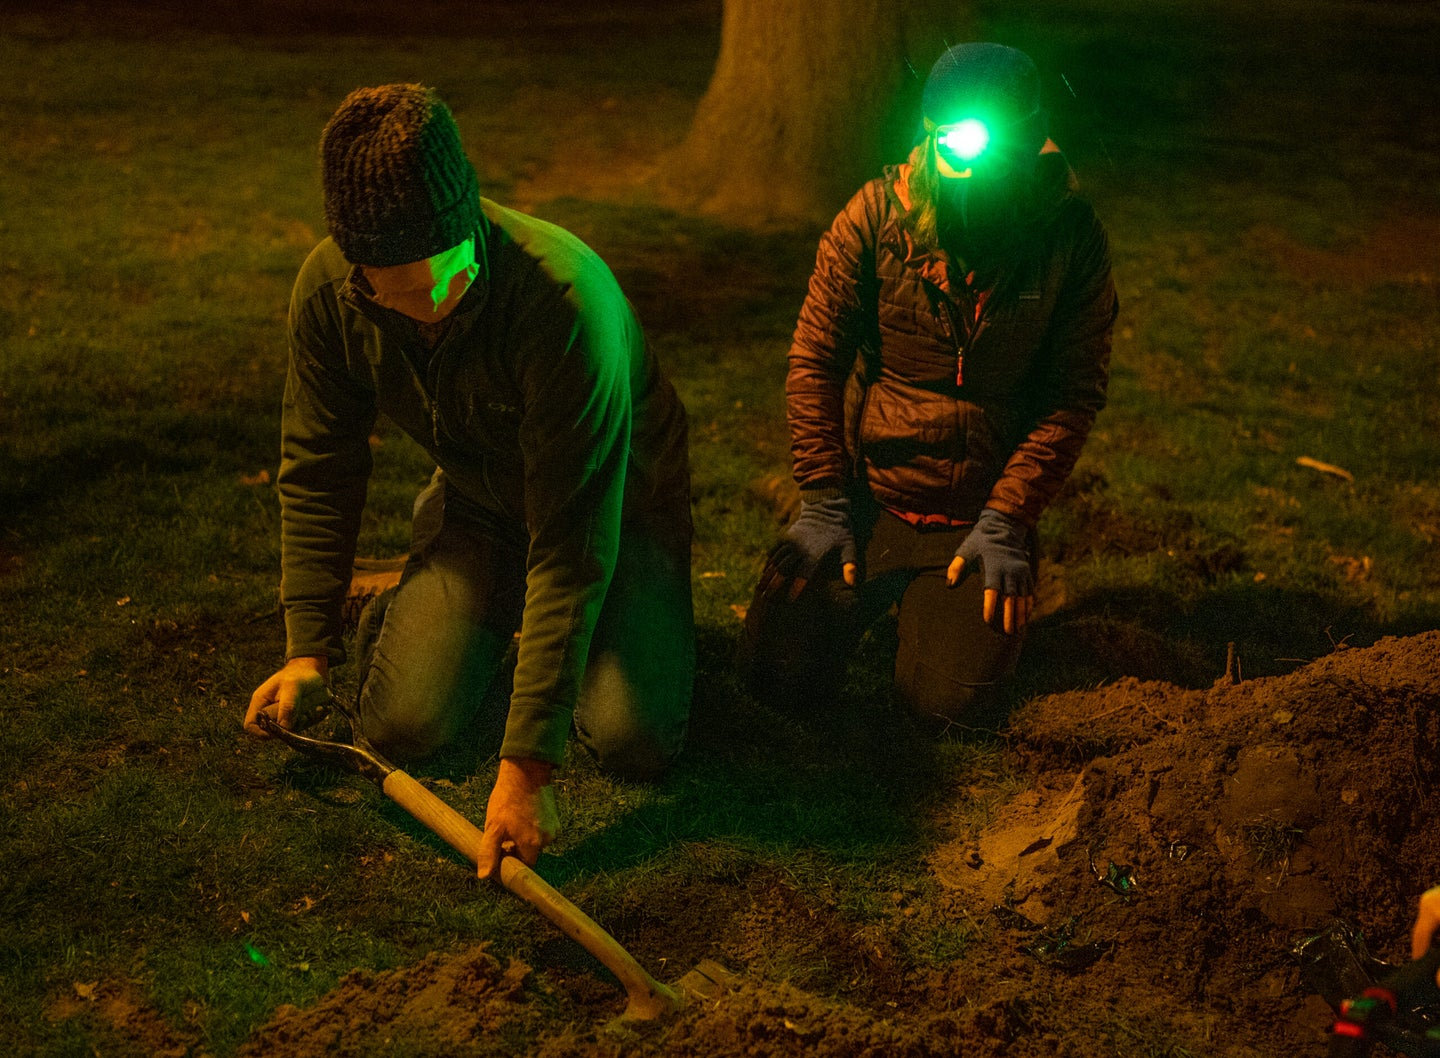 Two scientists dig with a shovel.